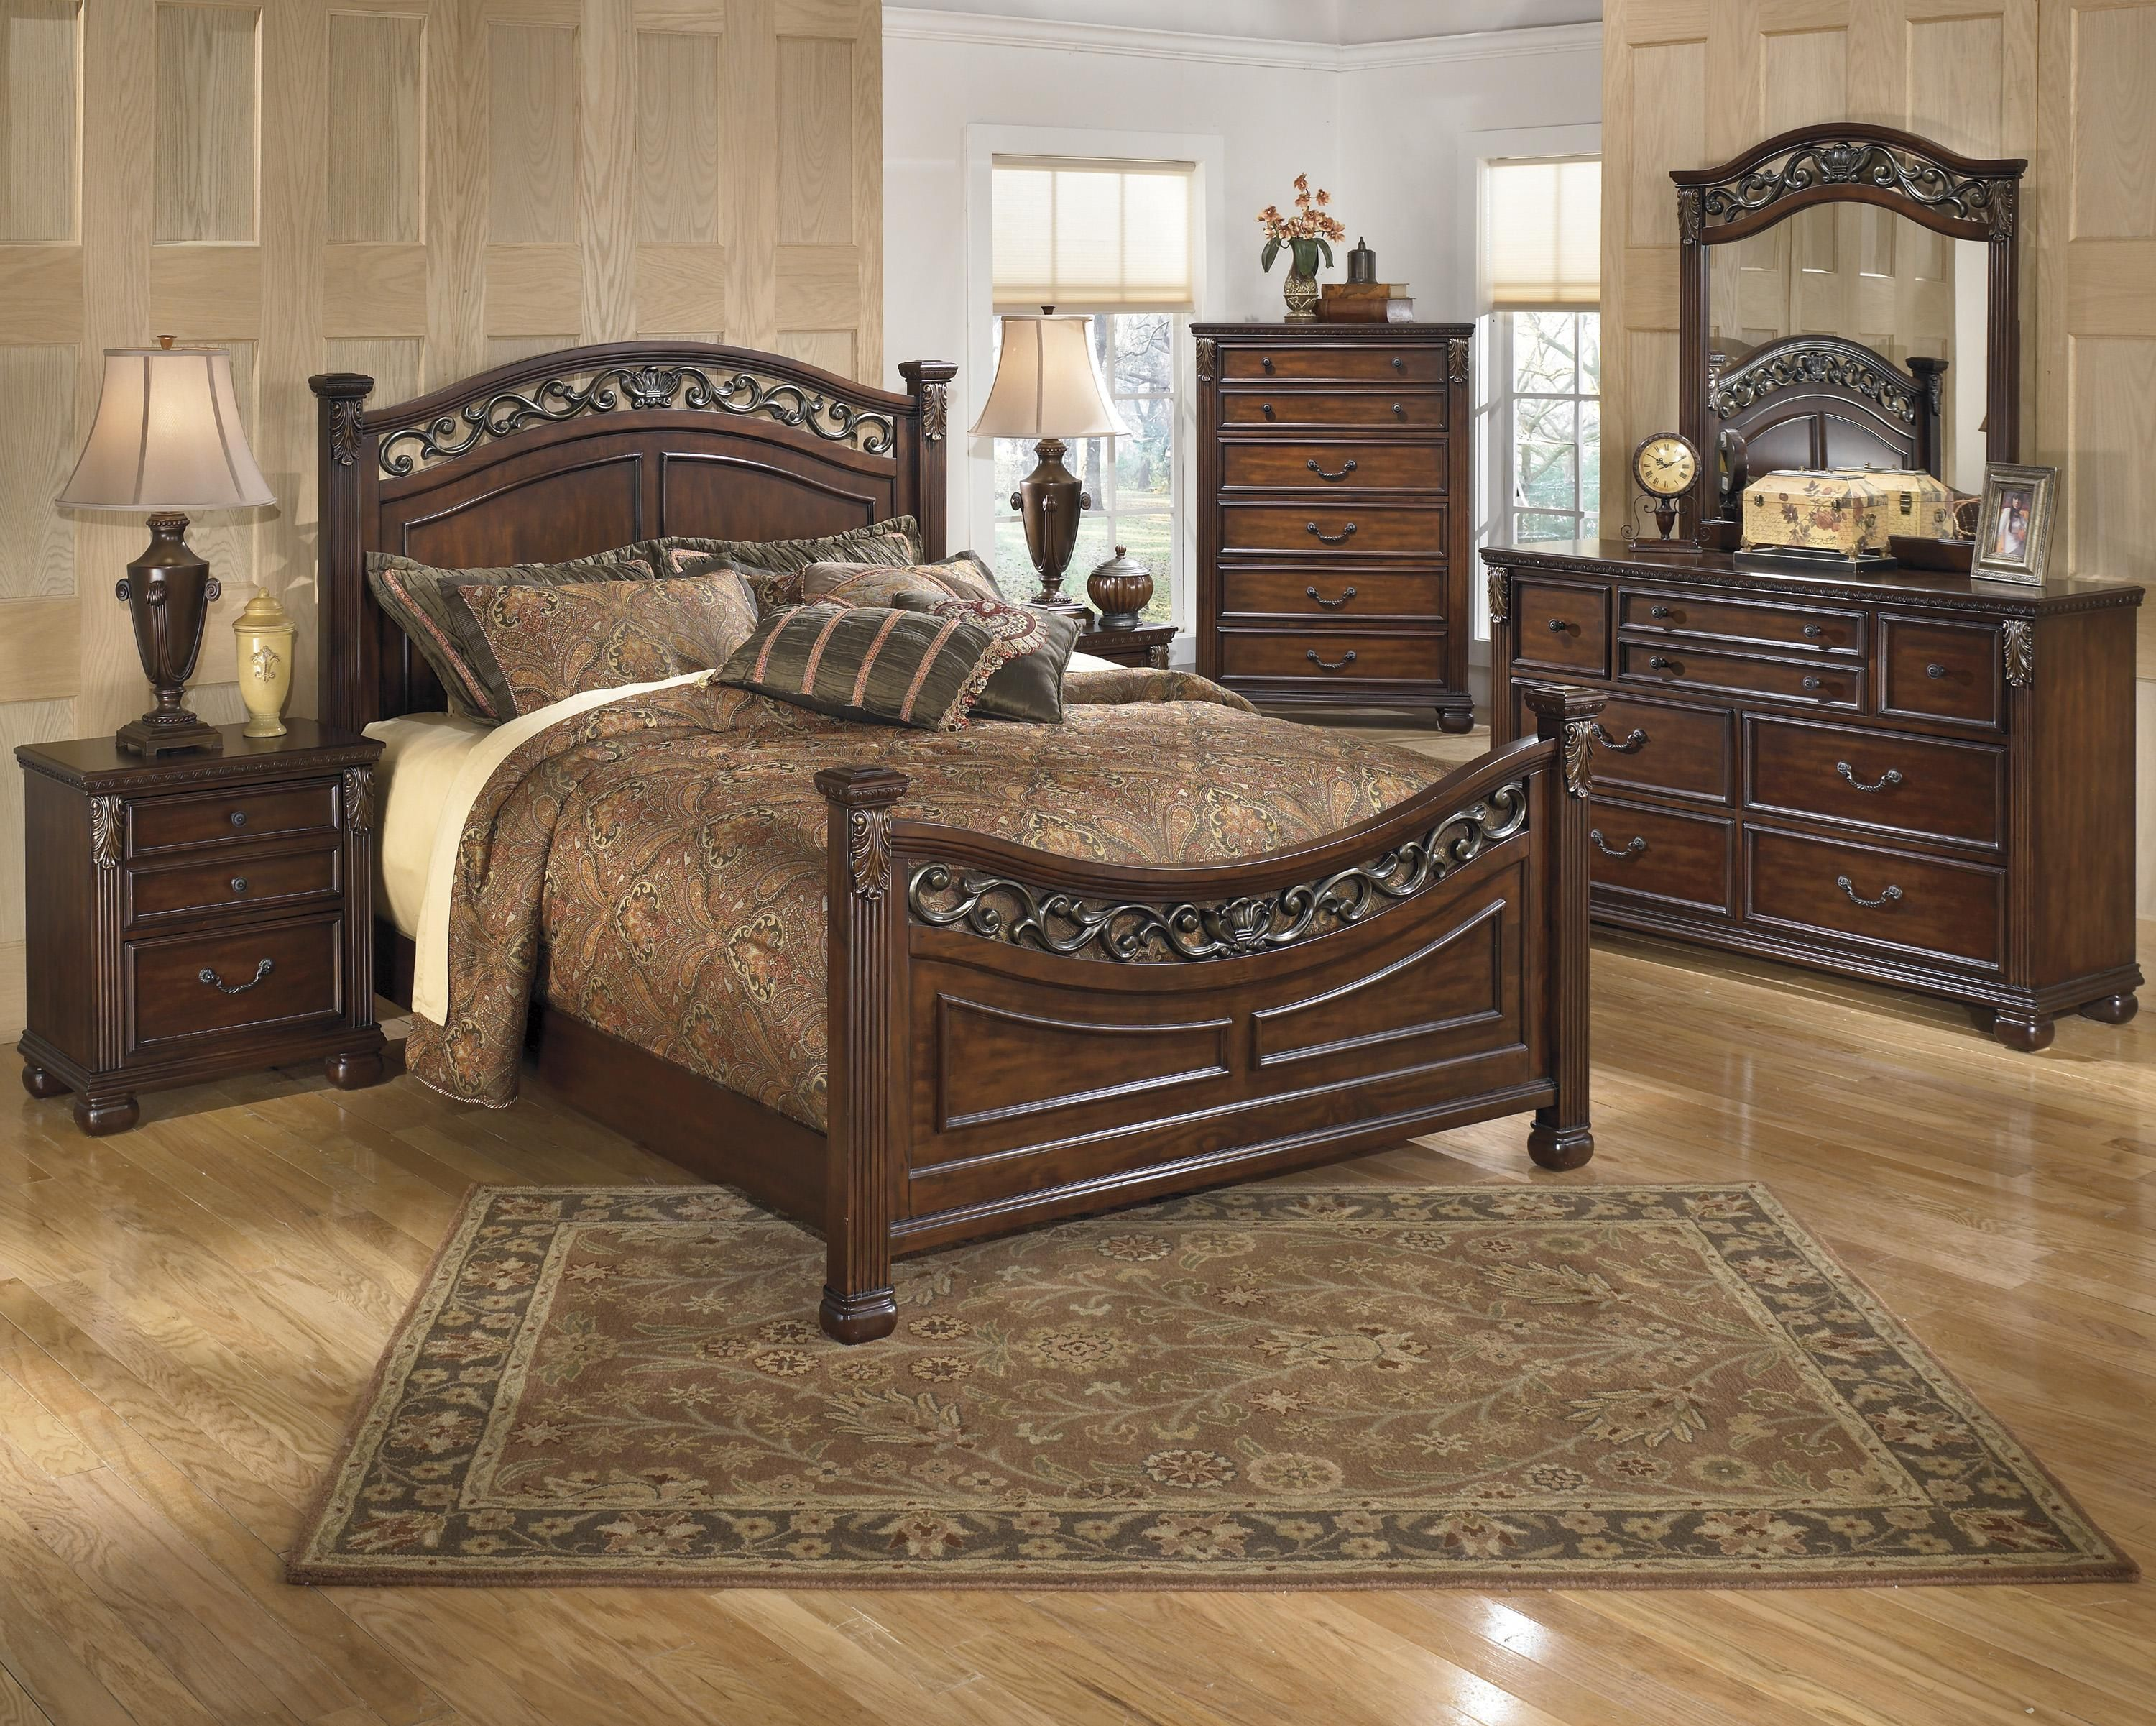 Leahlyn Queen Bedroom Group by Signature Design by Ashley